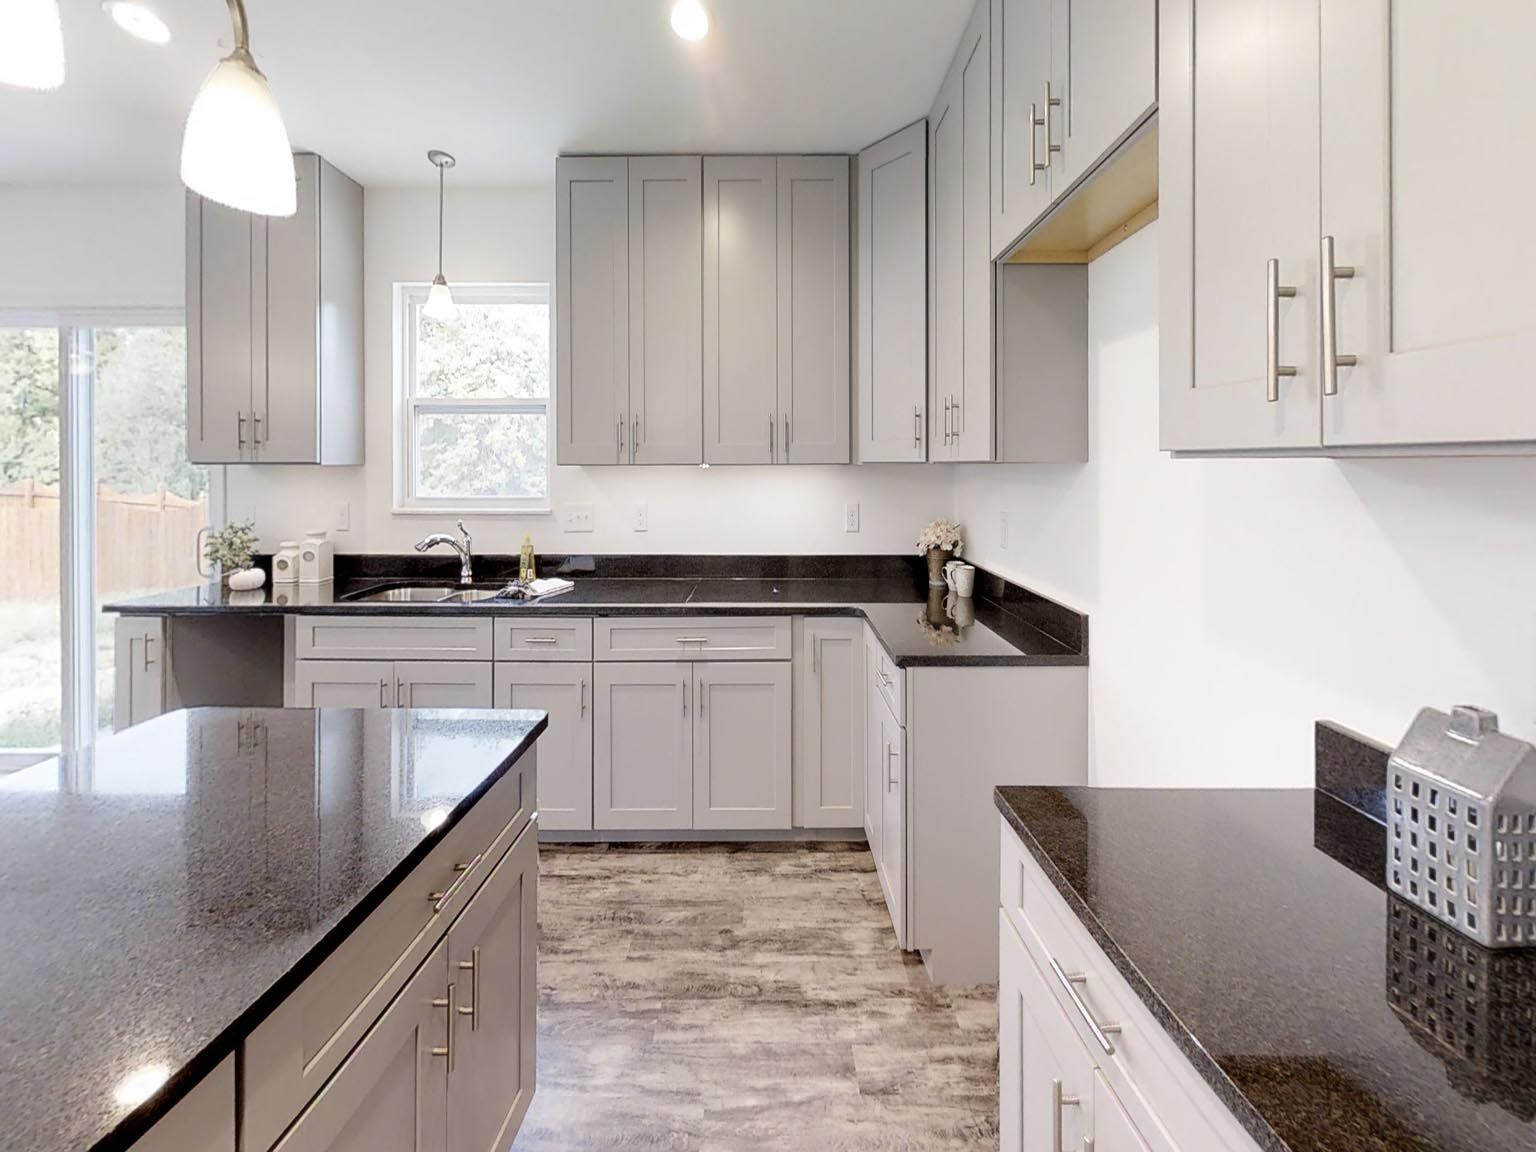 Kitchen featured in the Herndon By C.A. Jones, Inc.  in St. Louis, IL